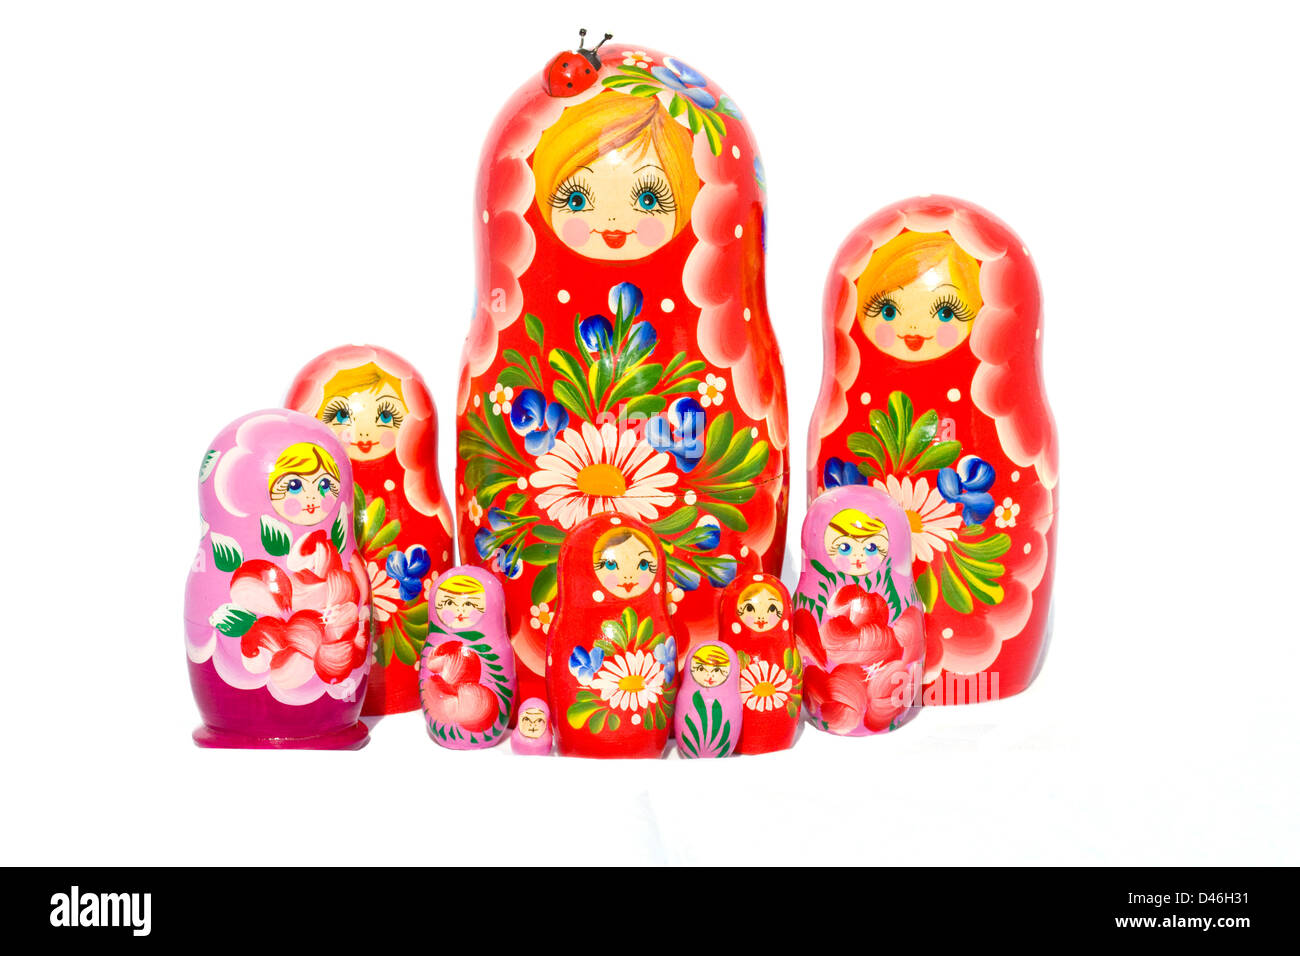 Red and violet Matryoshka doll families against white background. - Stock Image